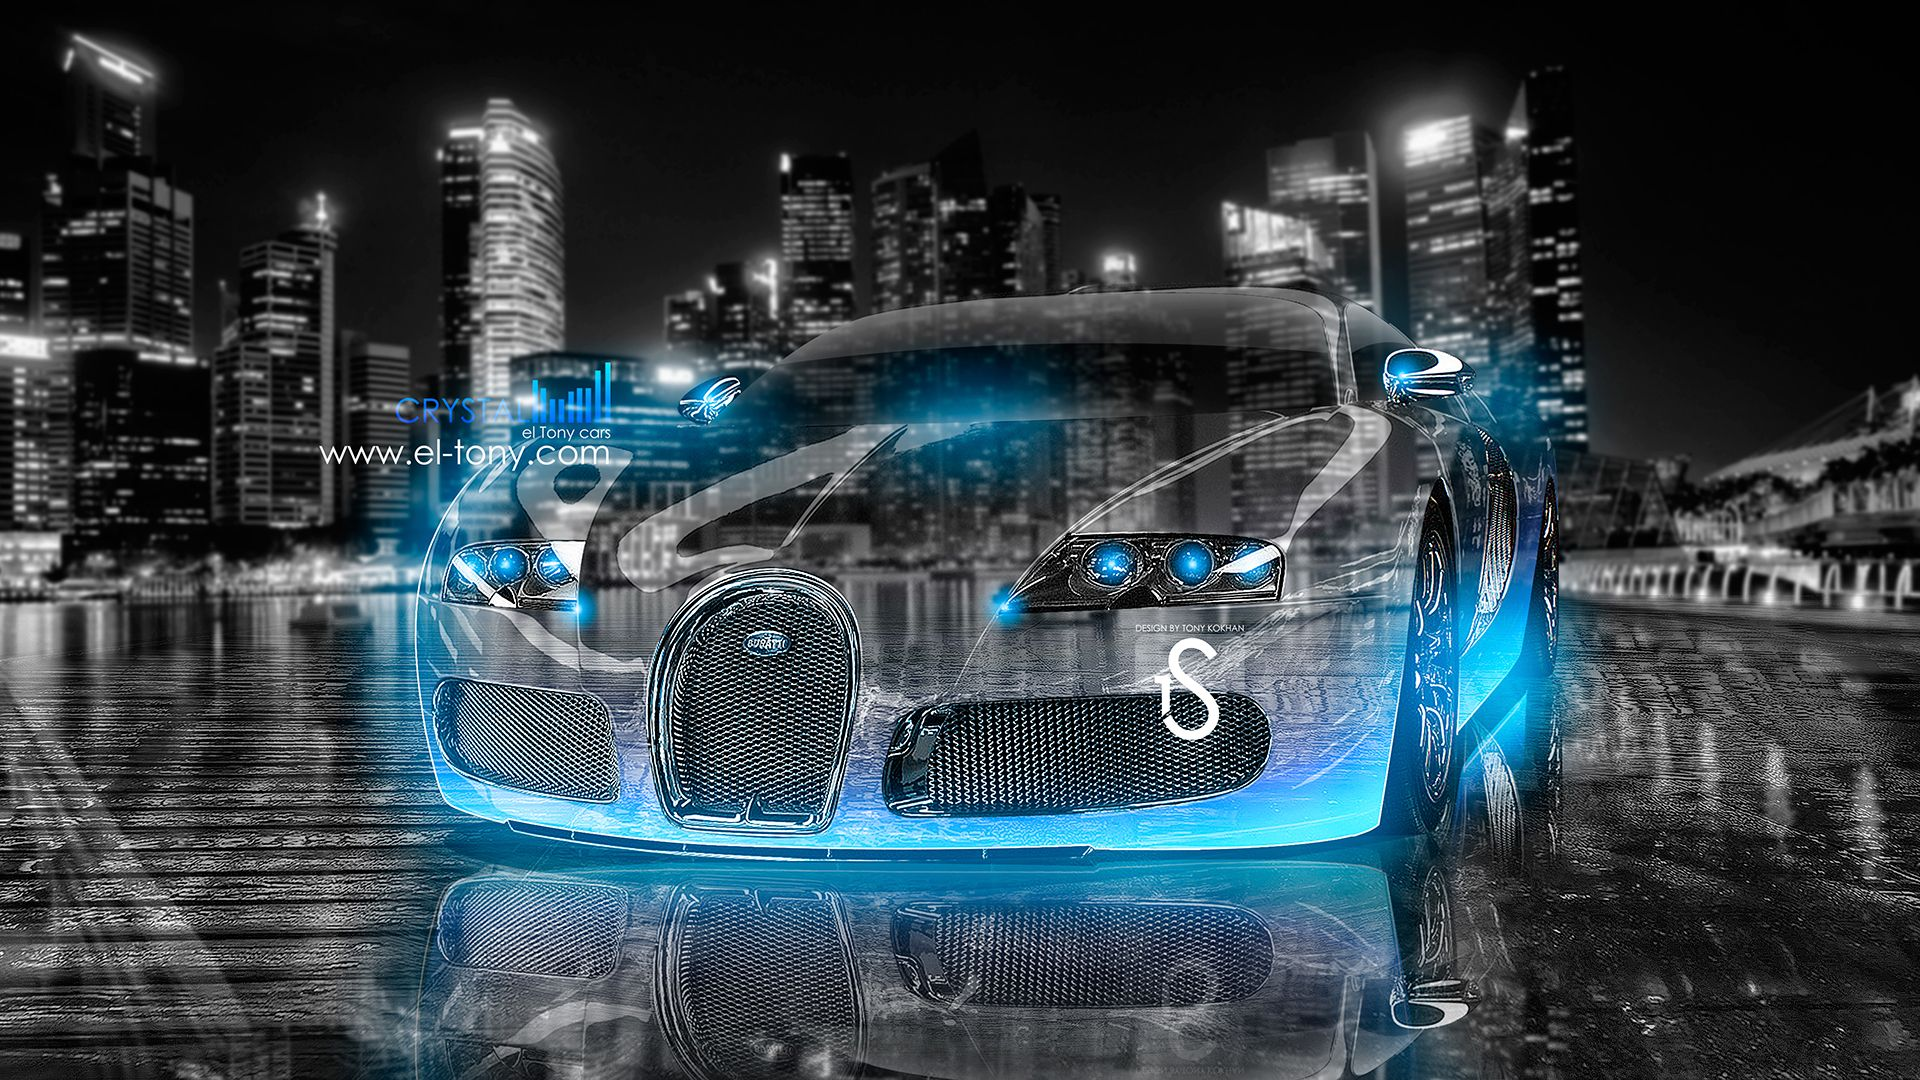 Gold Bugatti Veyron With Neon | Bugatti 16C Galibier Blue Fire Car 2013 HD Wallpapers Design By Tony  ... | Cars | Pinterest | Bugatti Veyron And Cars